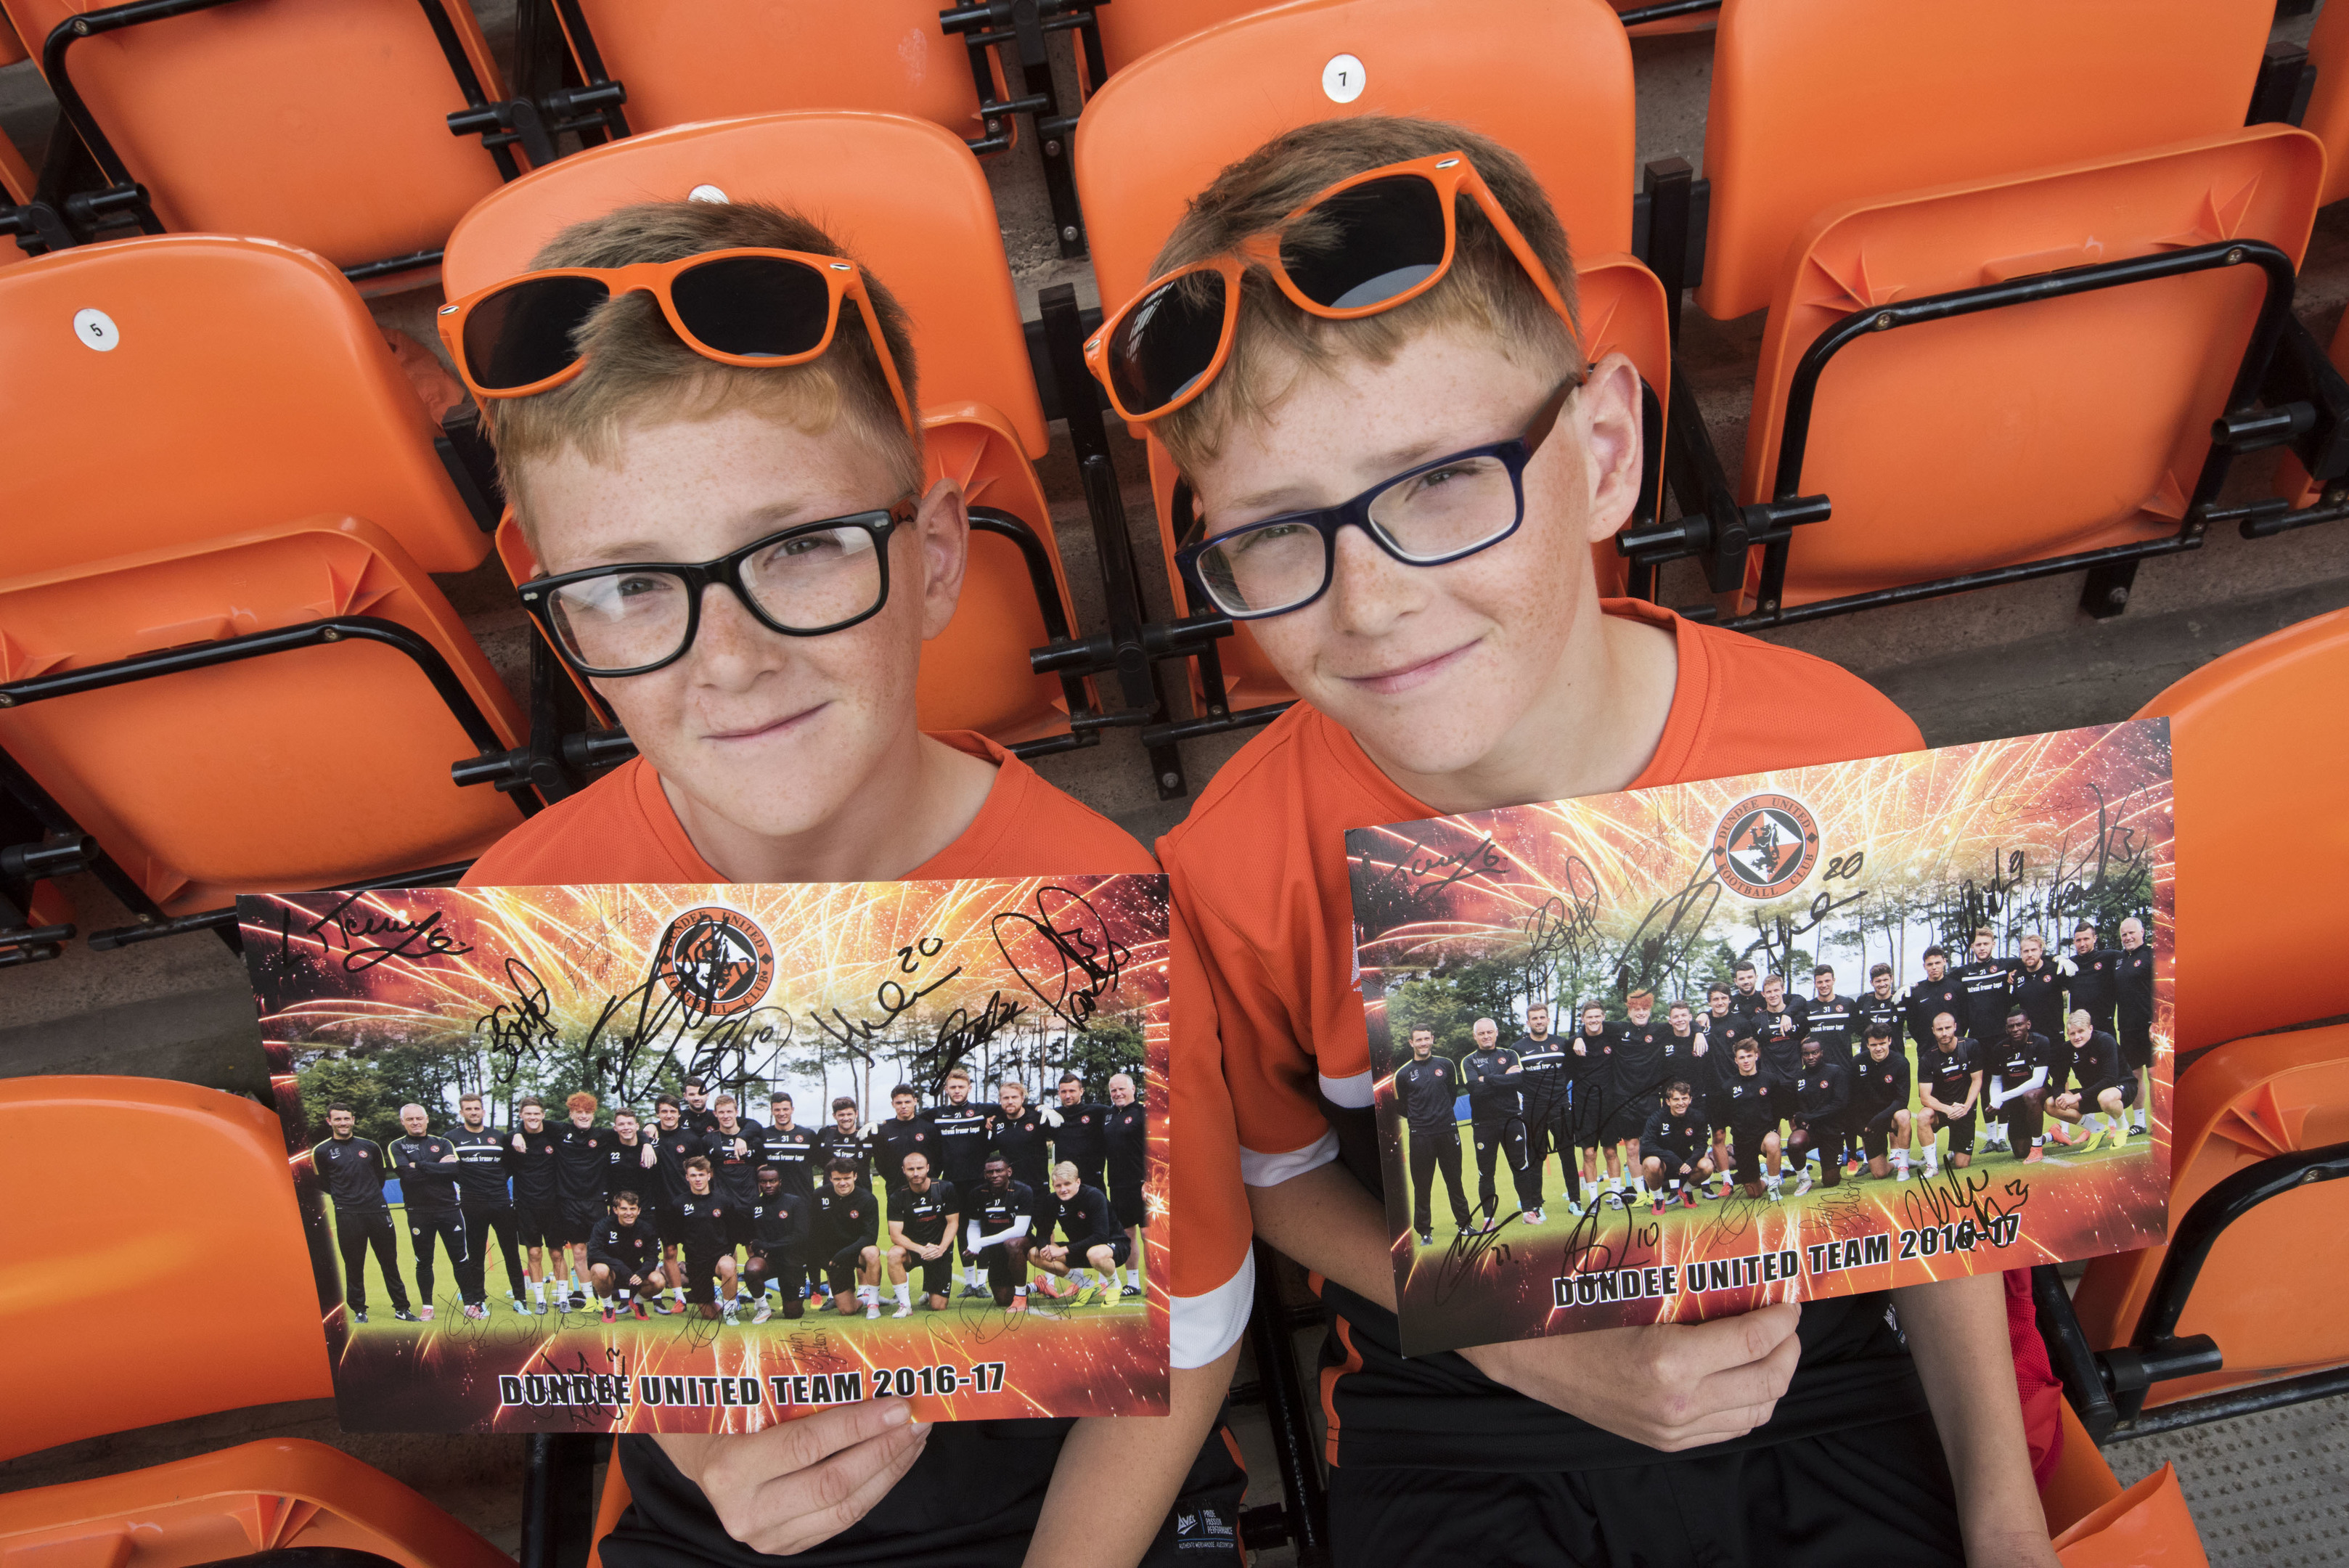 Twins Luis and Marshall Sirling (13) with their signed posters